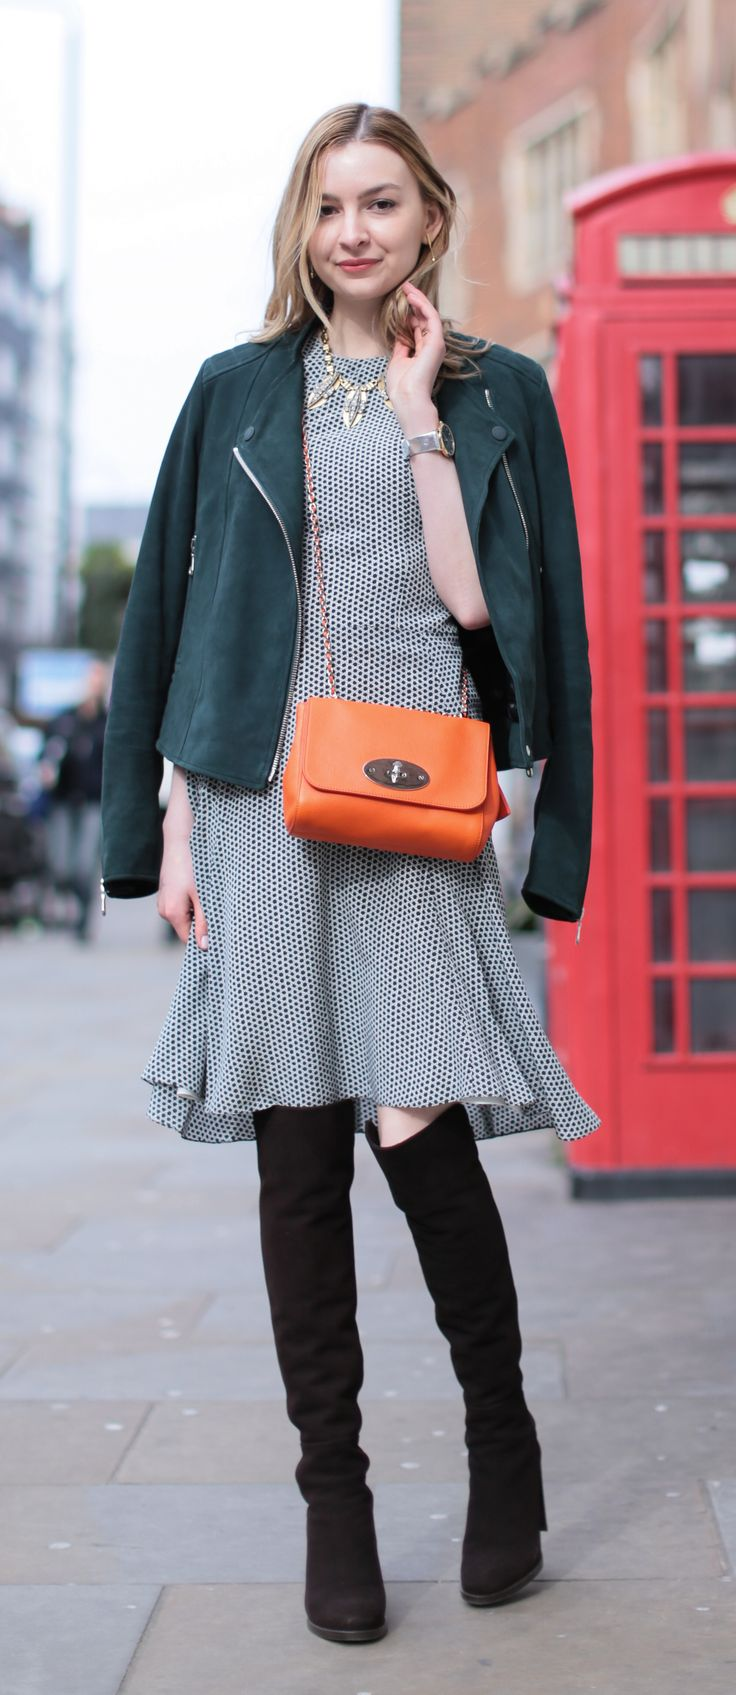 Aleksander l gina tricot handbag from 2010 h amp m sunglasses 2006 - Knee High Stuart Weitzman Boots Mulberry Dress And Mulberry Lily Bag In Orange